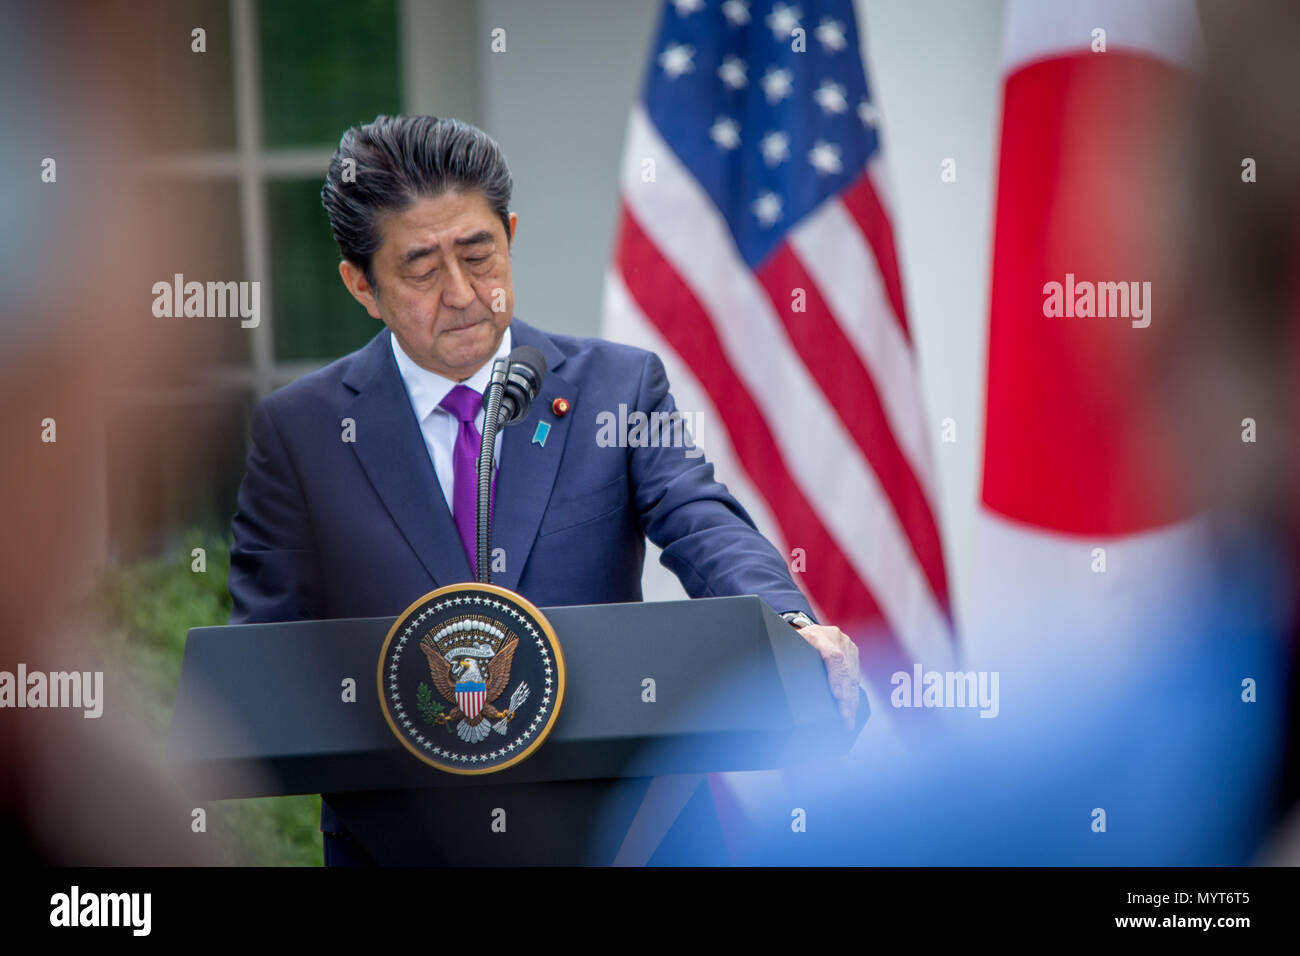 Washington DC, USA. 7th June, 2018. President Donald Trump and Japanese Prime Minister Shinzo Abe hold a press conference after meeting in the Oval office. Credit: Michael Candelori/Alamy Live News - Stock Image